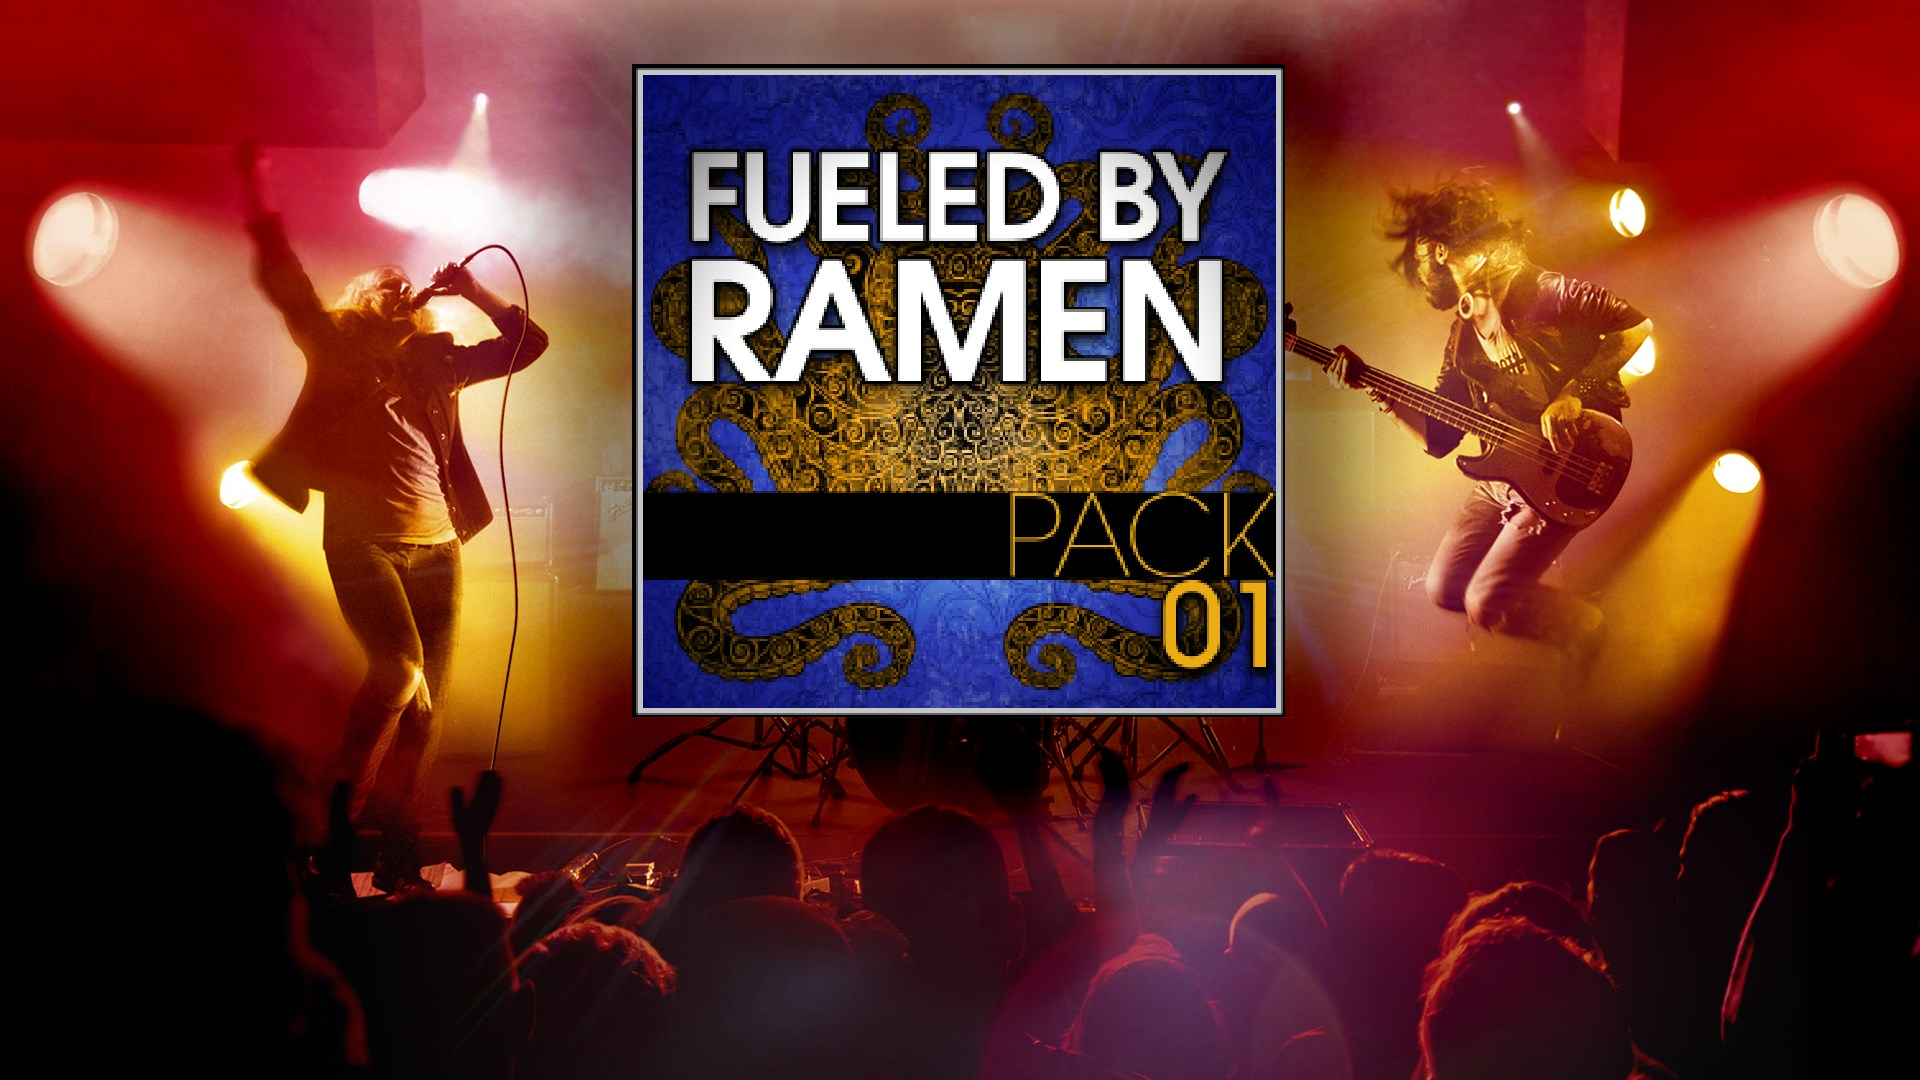 Fueled By Ramen Pack 01